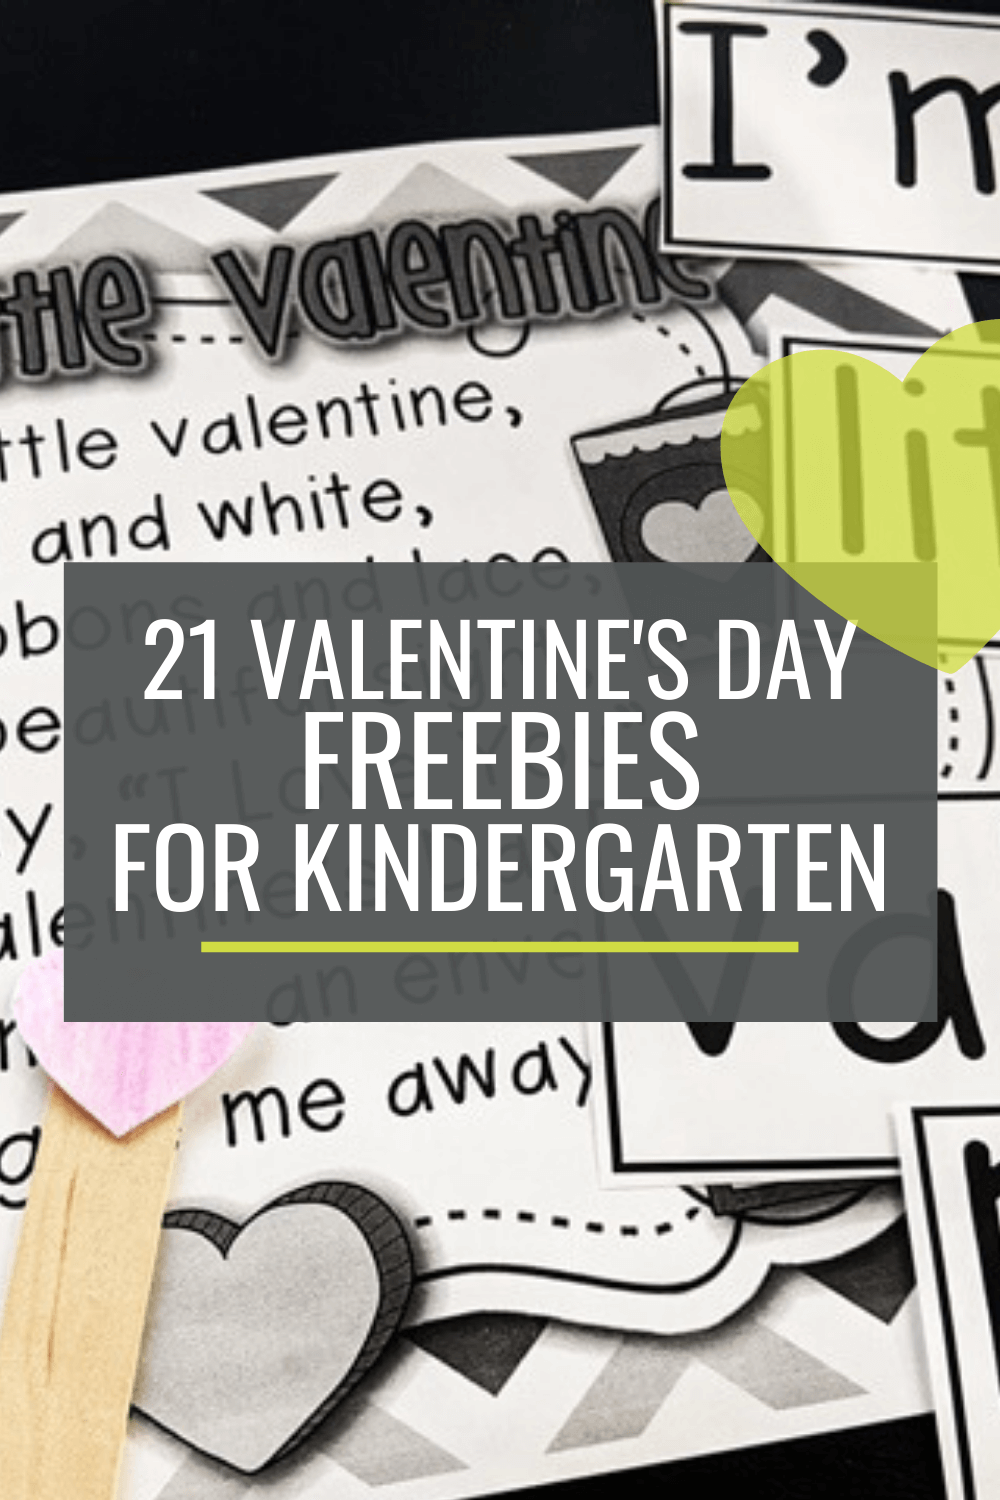 21 Valentines Day Freebies for Kindergarten